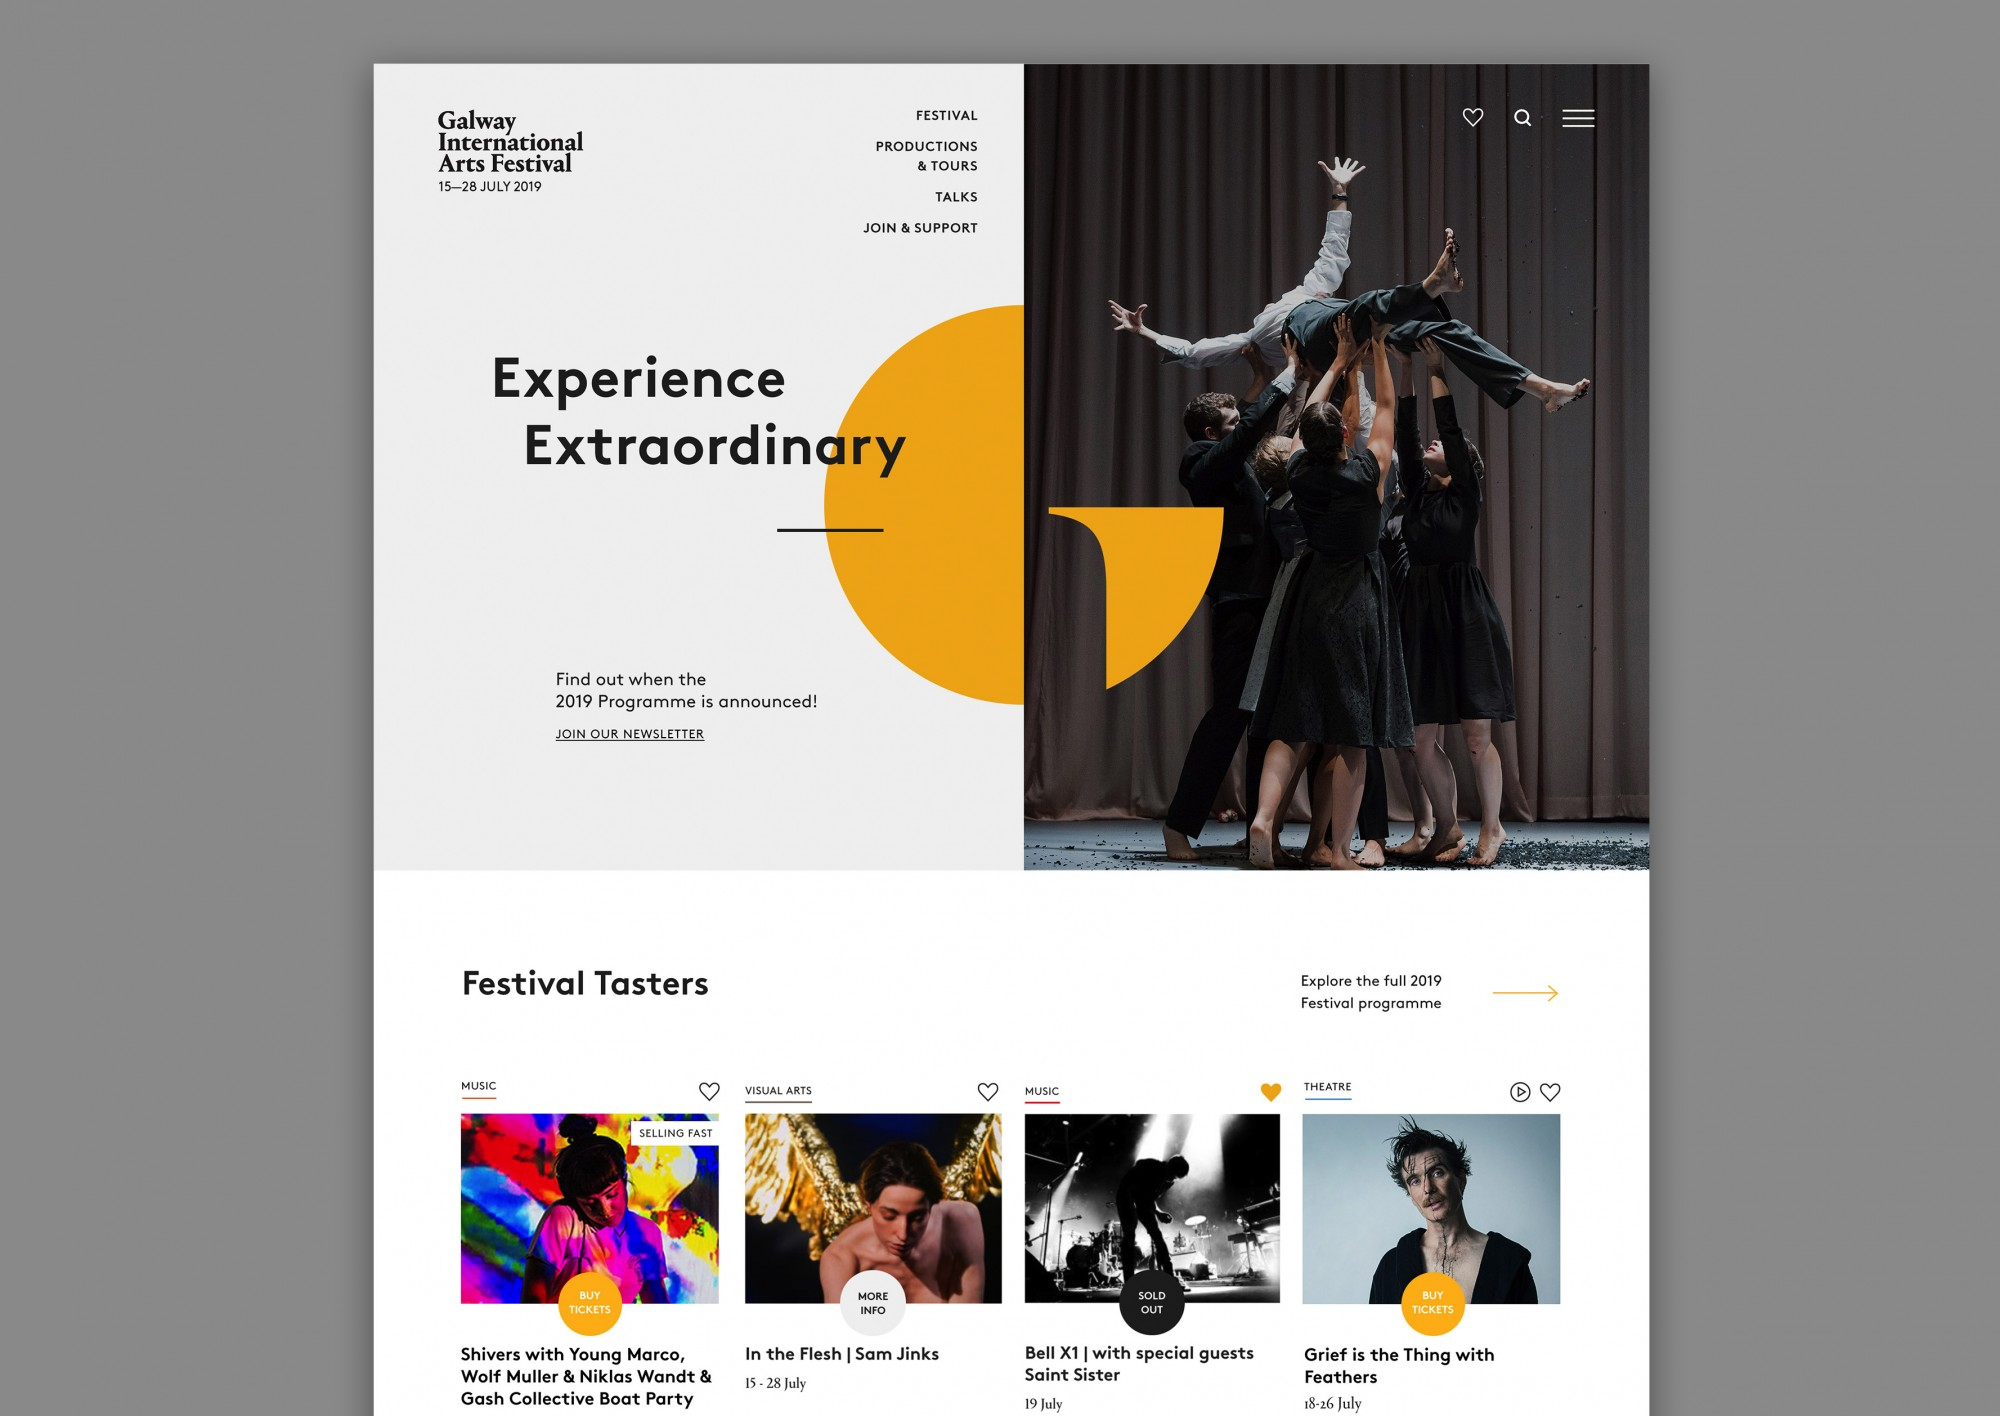 Cover image: Galway International Arts Festival (2019)